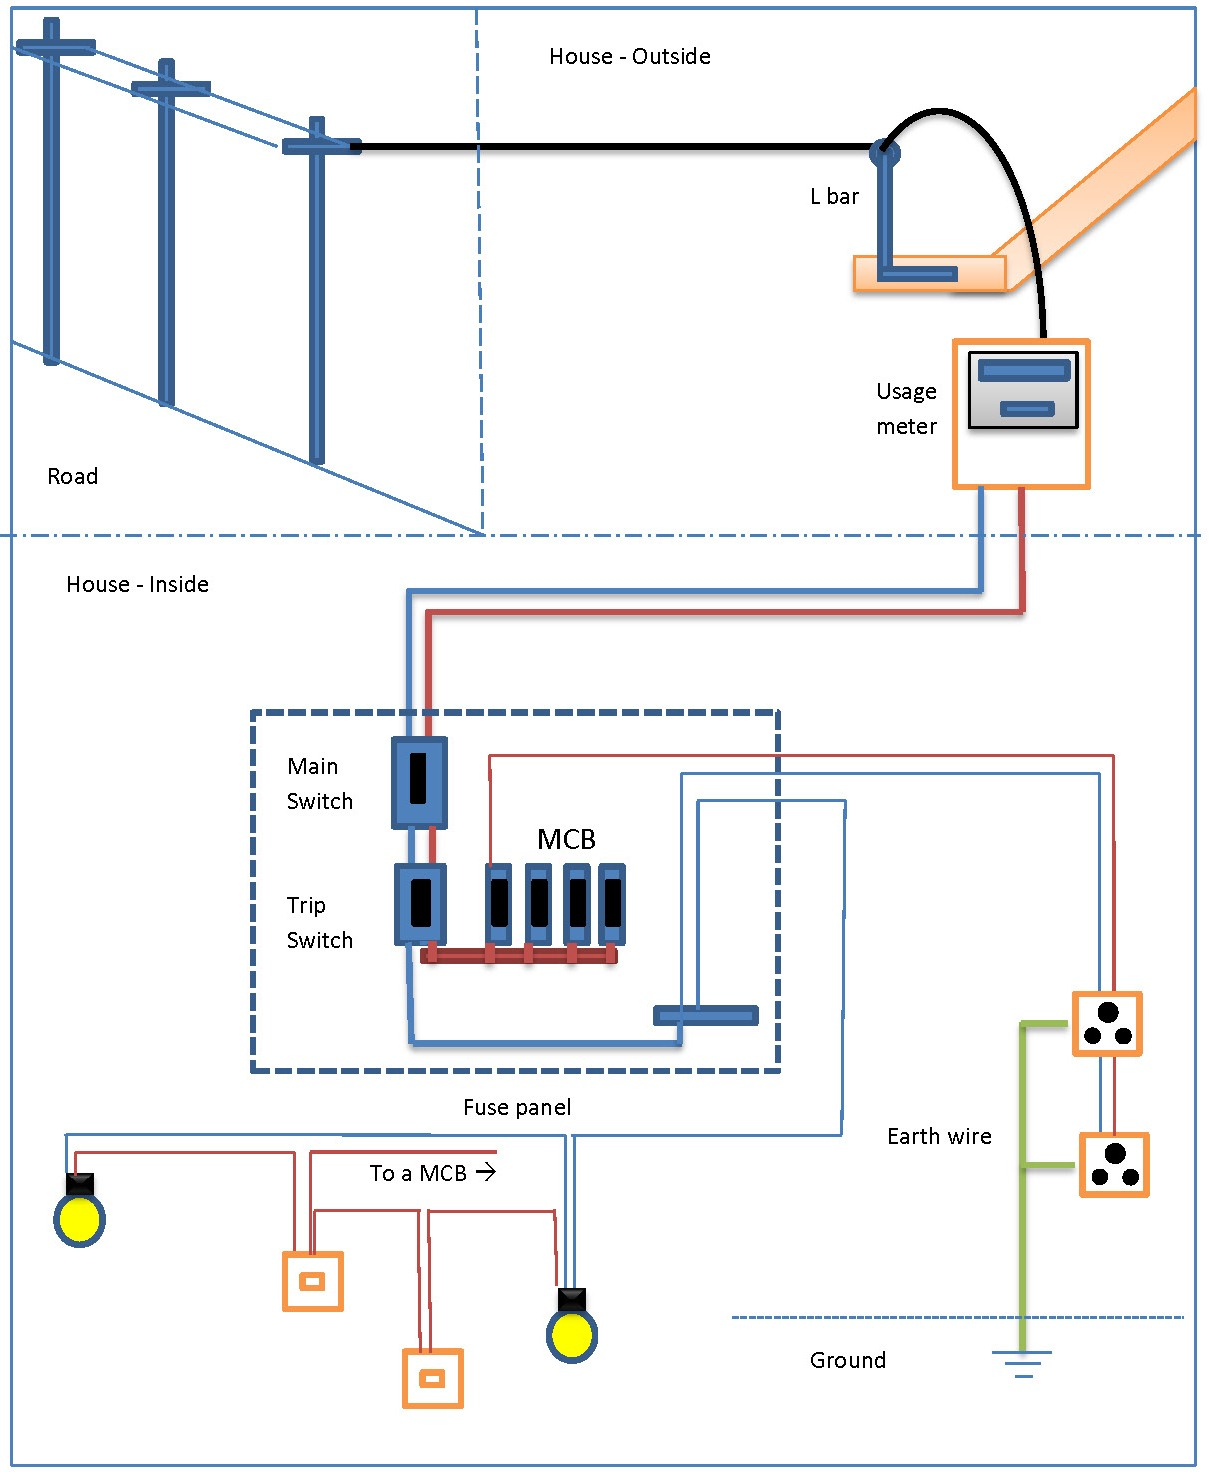 Doc3 senasum's blog house wiring diagram sri lanka new house wiring diagram at gsmportal.co